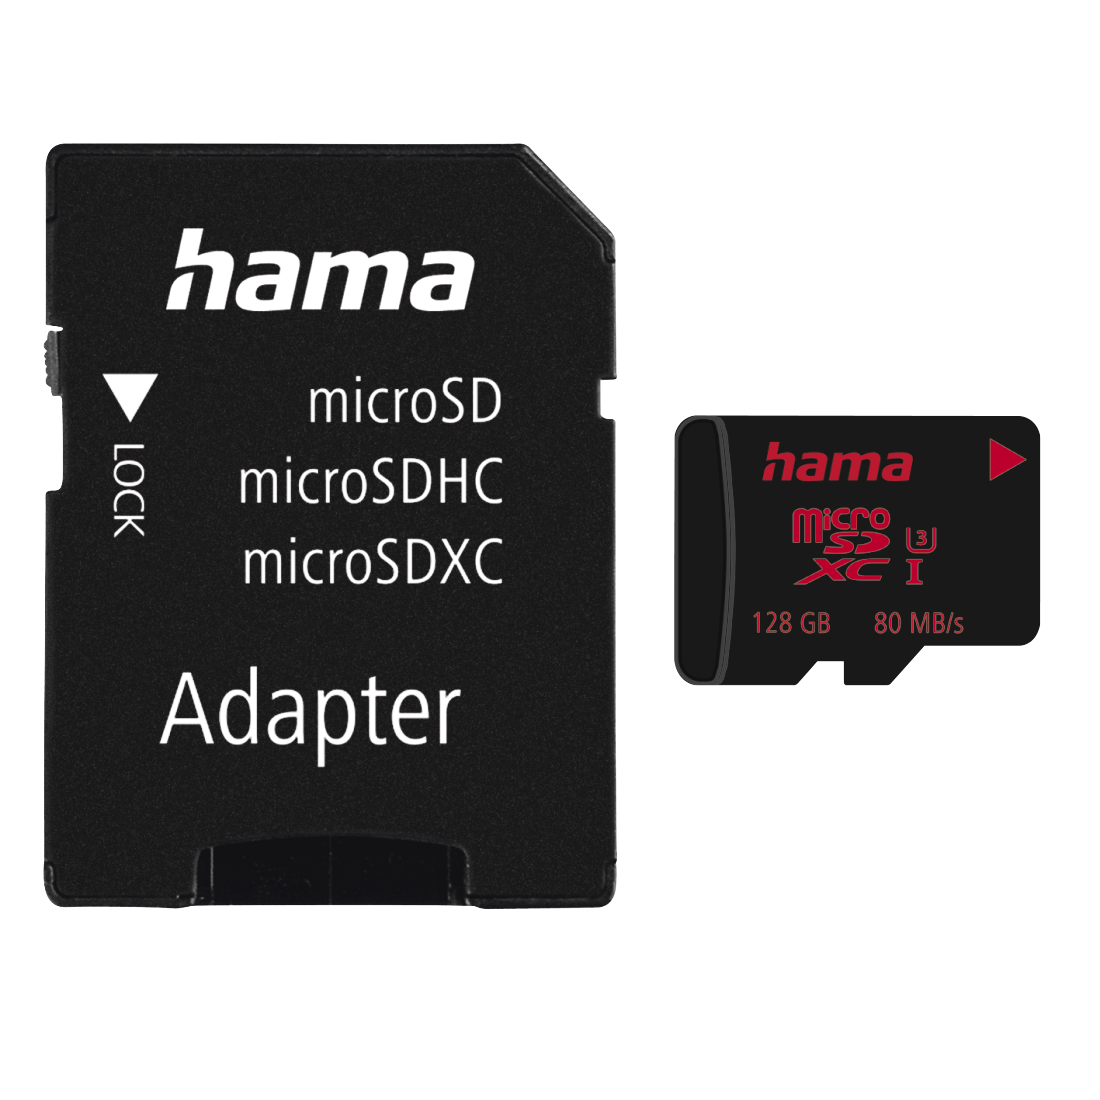 abx High-Res Image - Hama, microSDXC 128GB UHS Speed Class 3 UHS-I 80MB/s + Adapter/Mobile